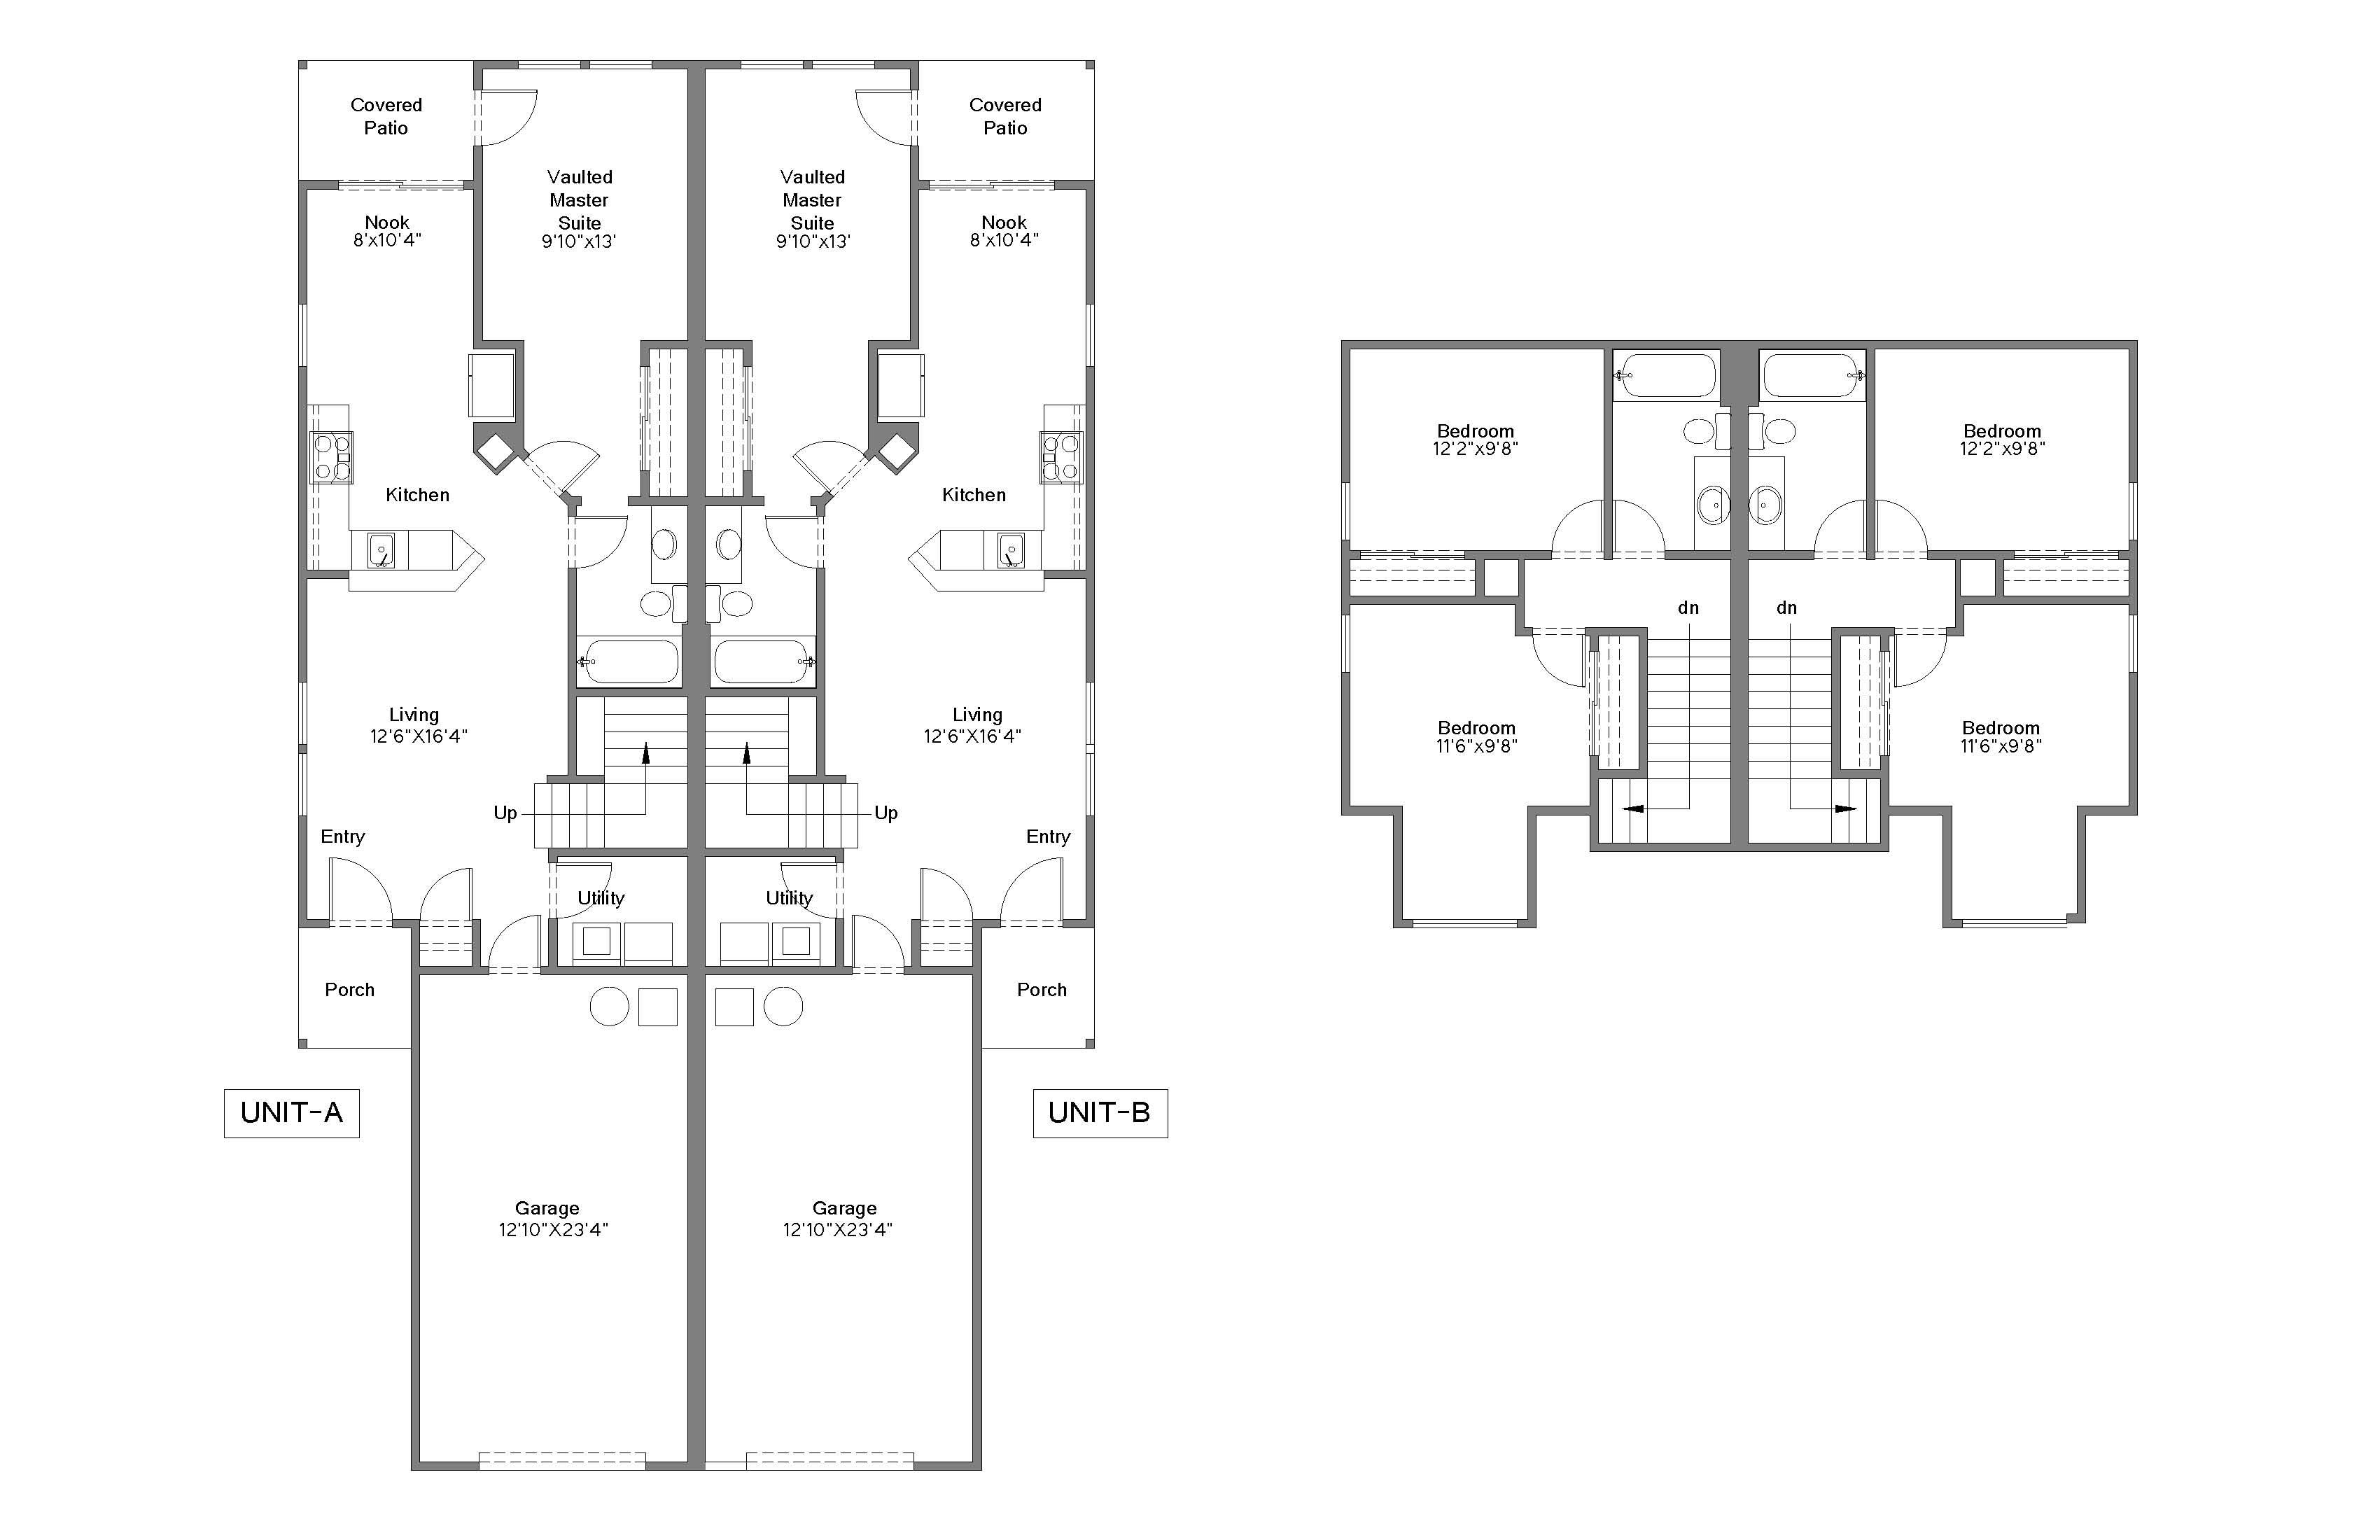 Architectural floor plan floor plan with autocad drawings autocad architectural drawings Home plan drawing